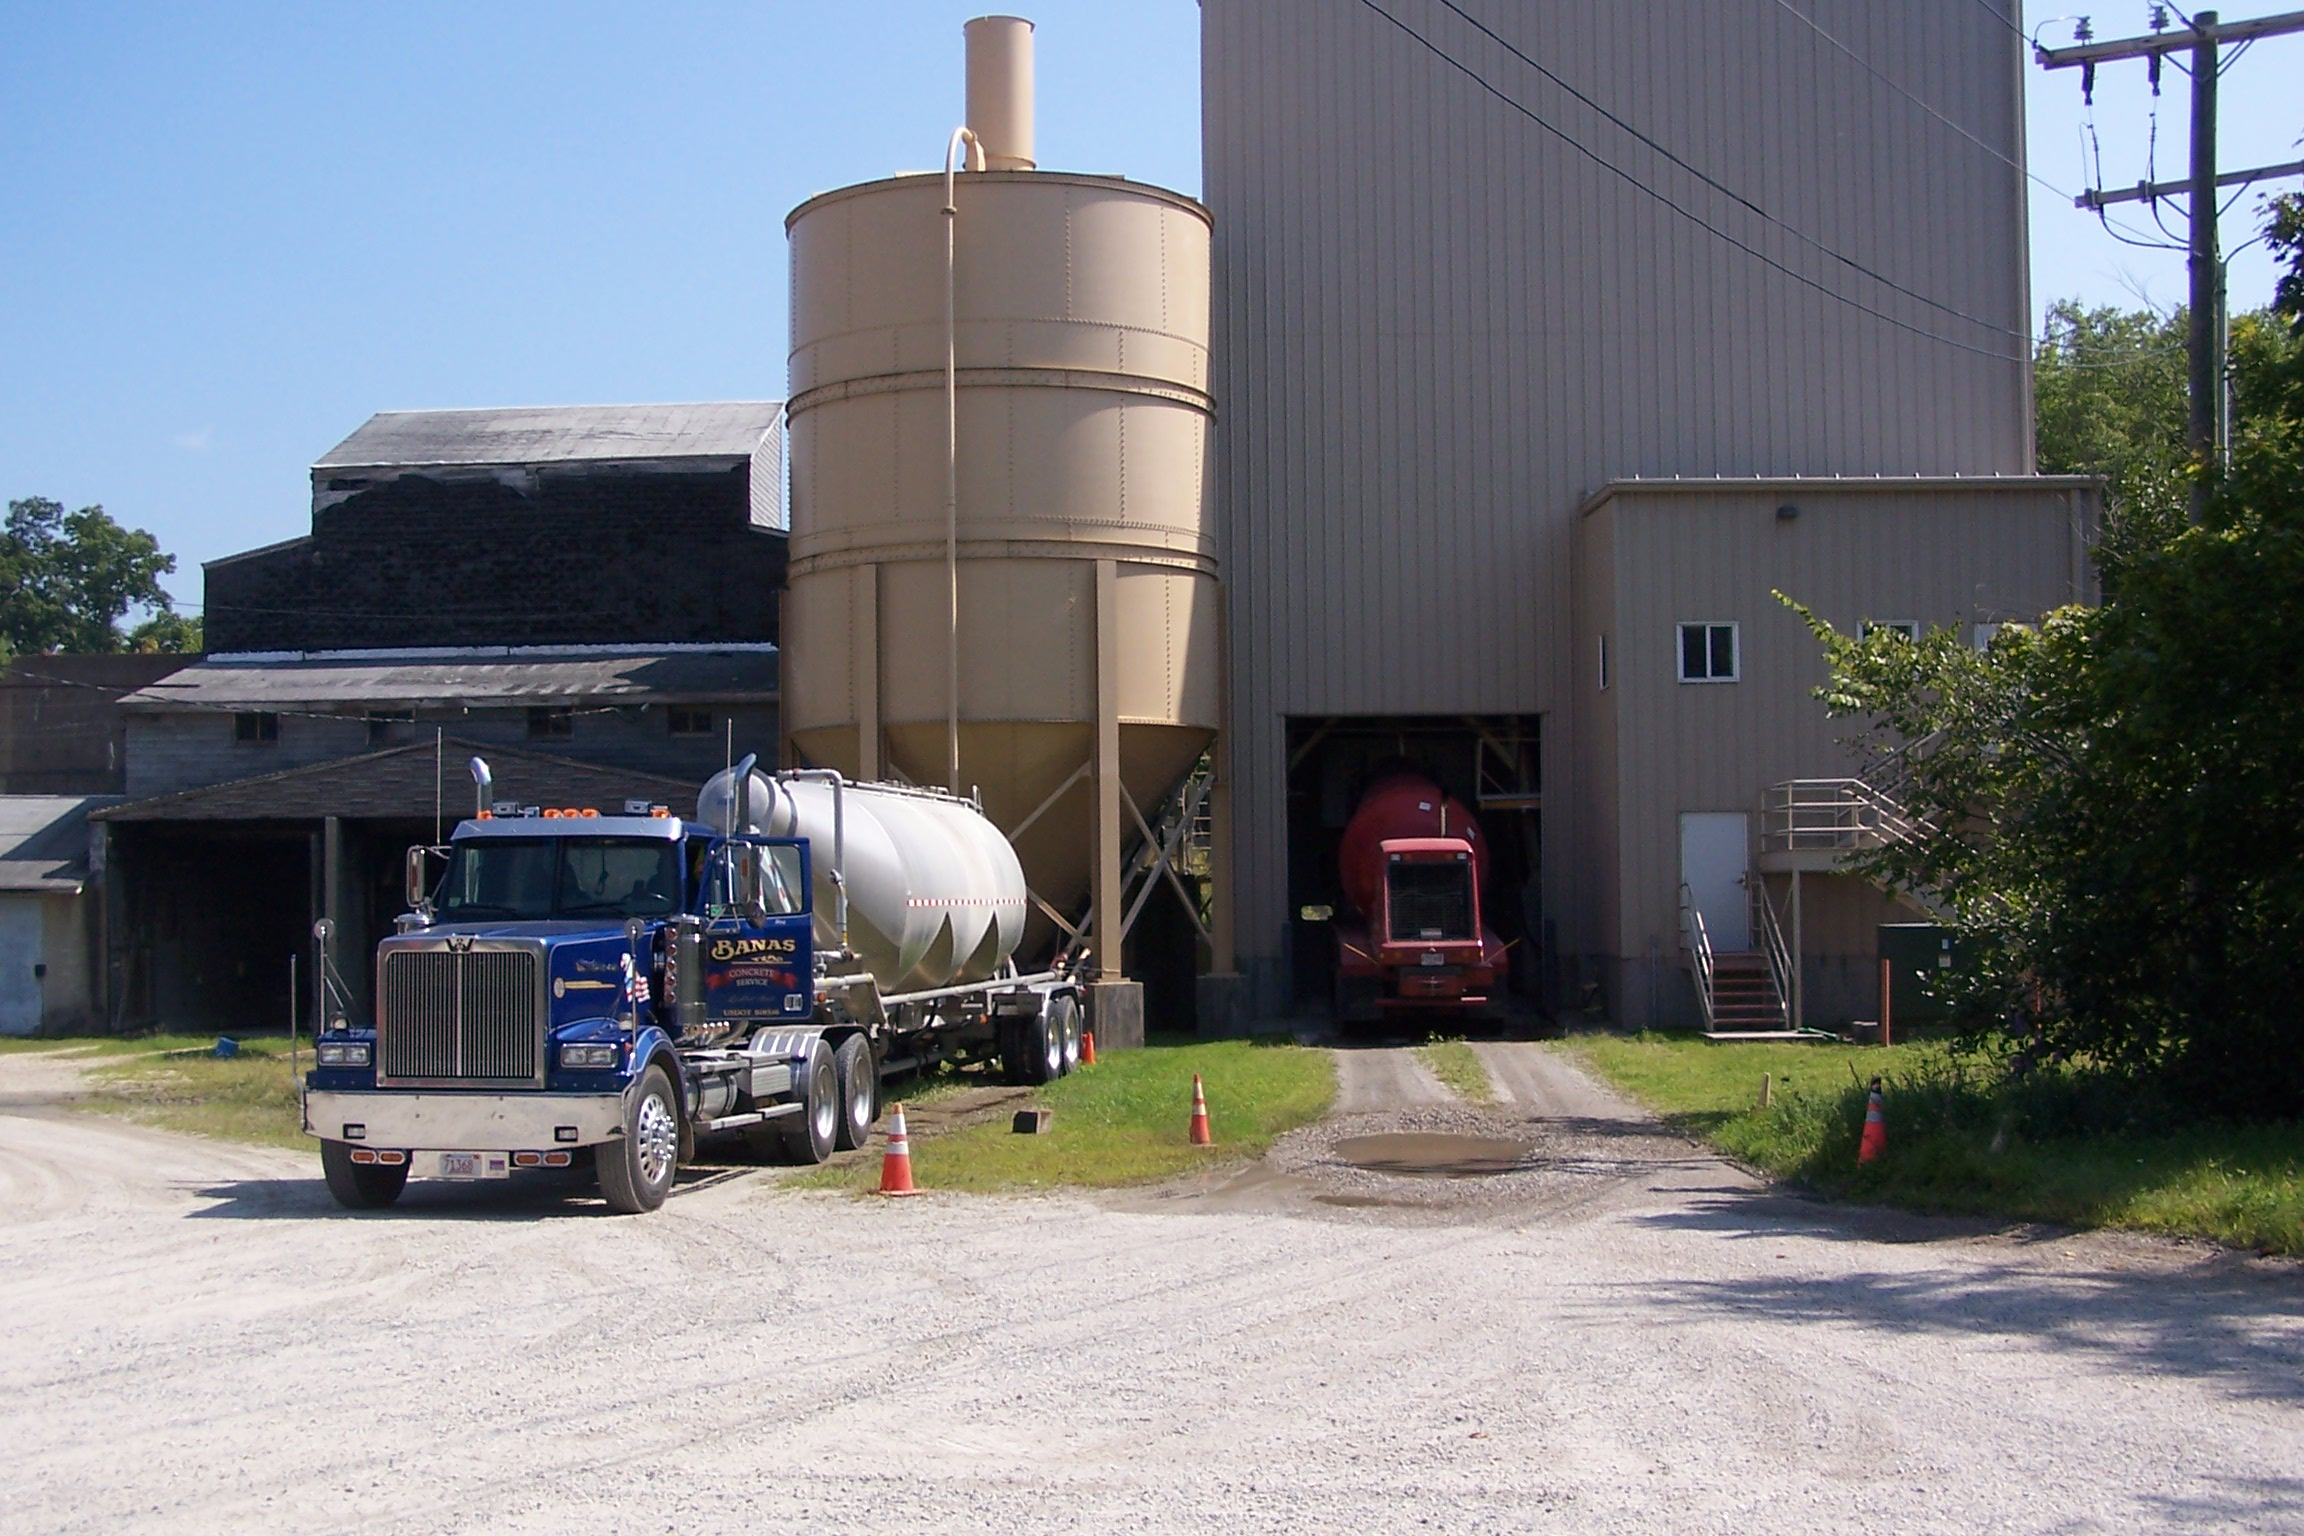 Banas Concrete Plant at 246 Fuller Street in Ludlow, MA